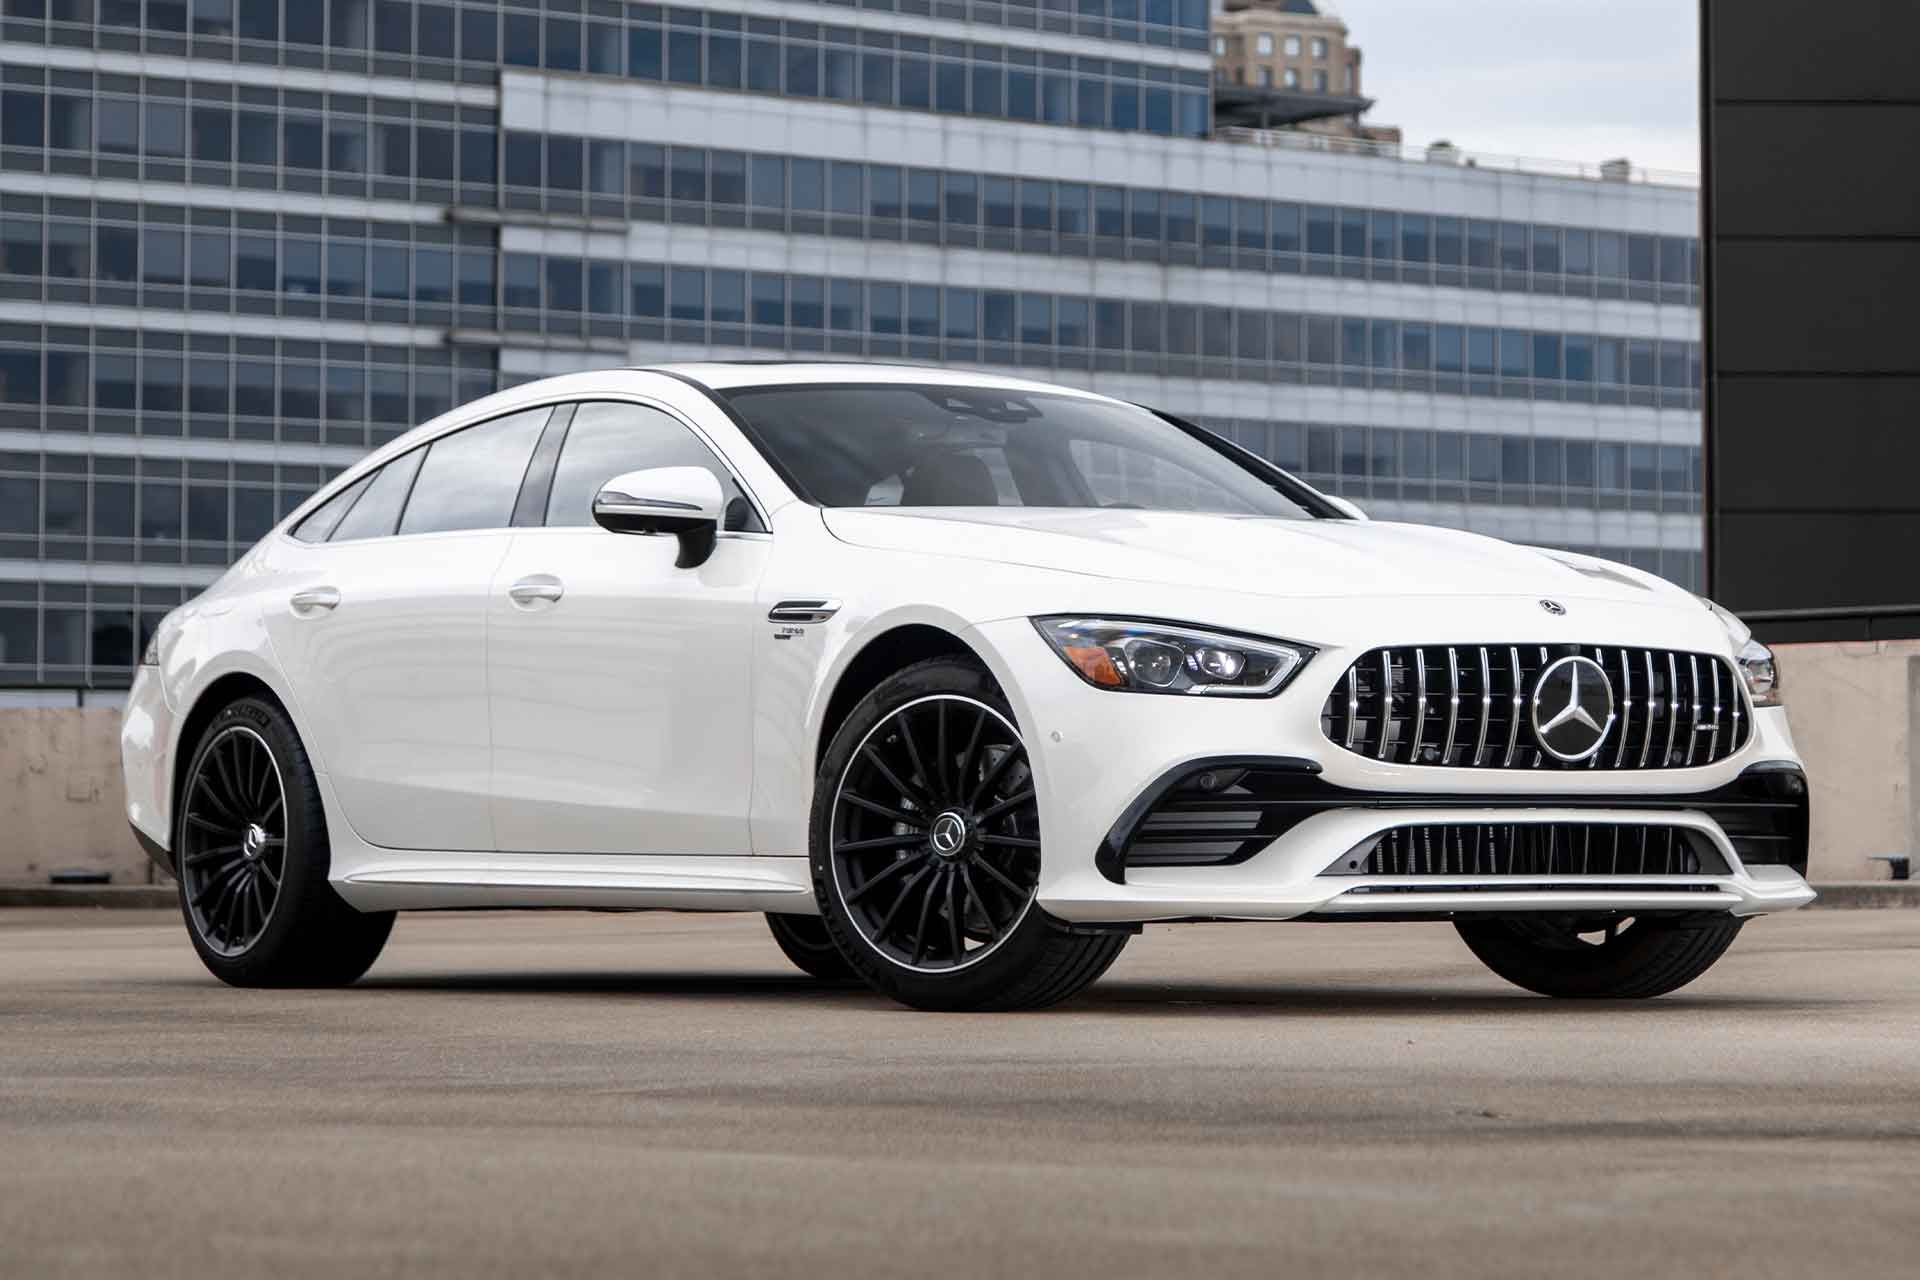 2021 Mercedes Amg Gt 43 4 Door Coupe In 2020 Mercedes Amg Amg Mercedes Car